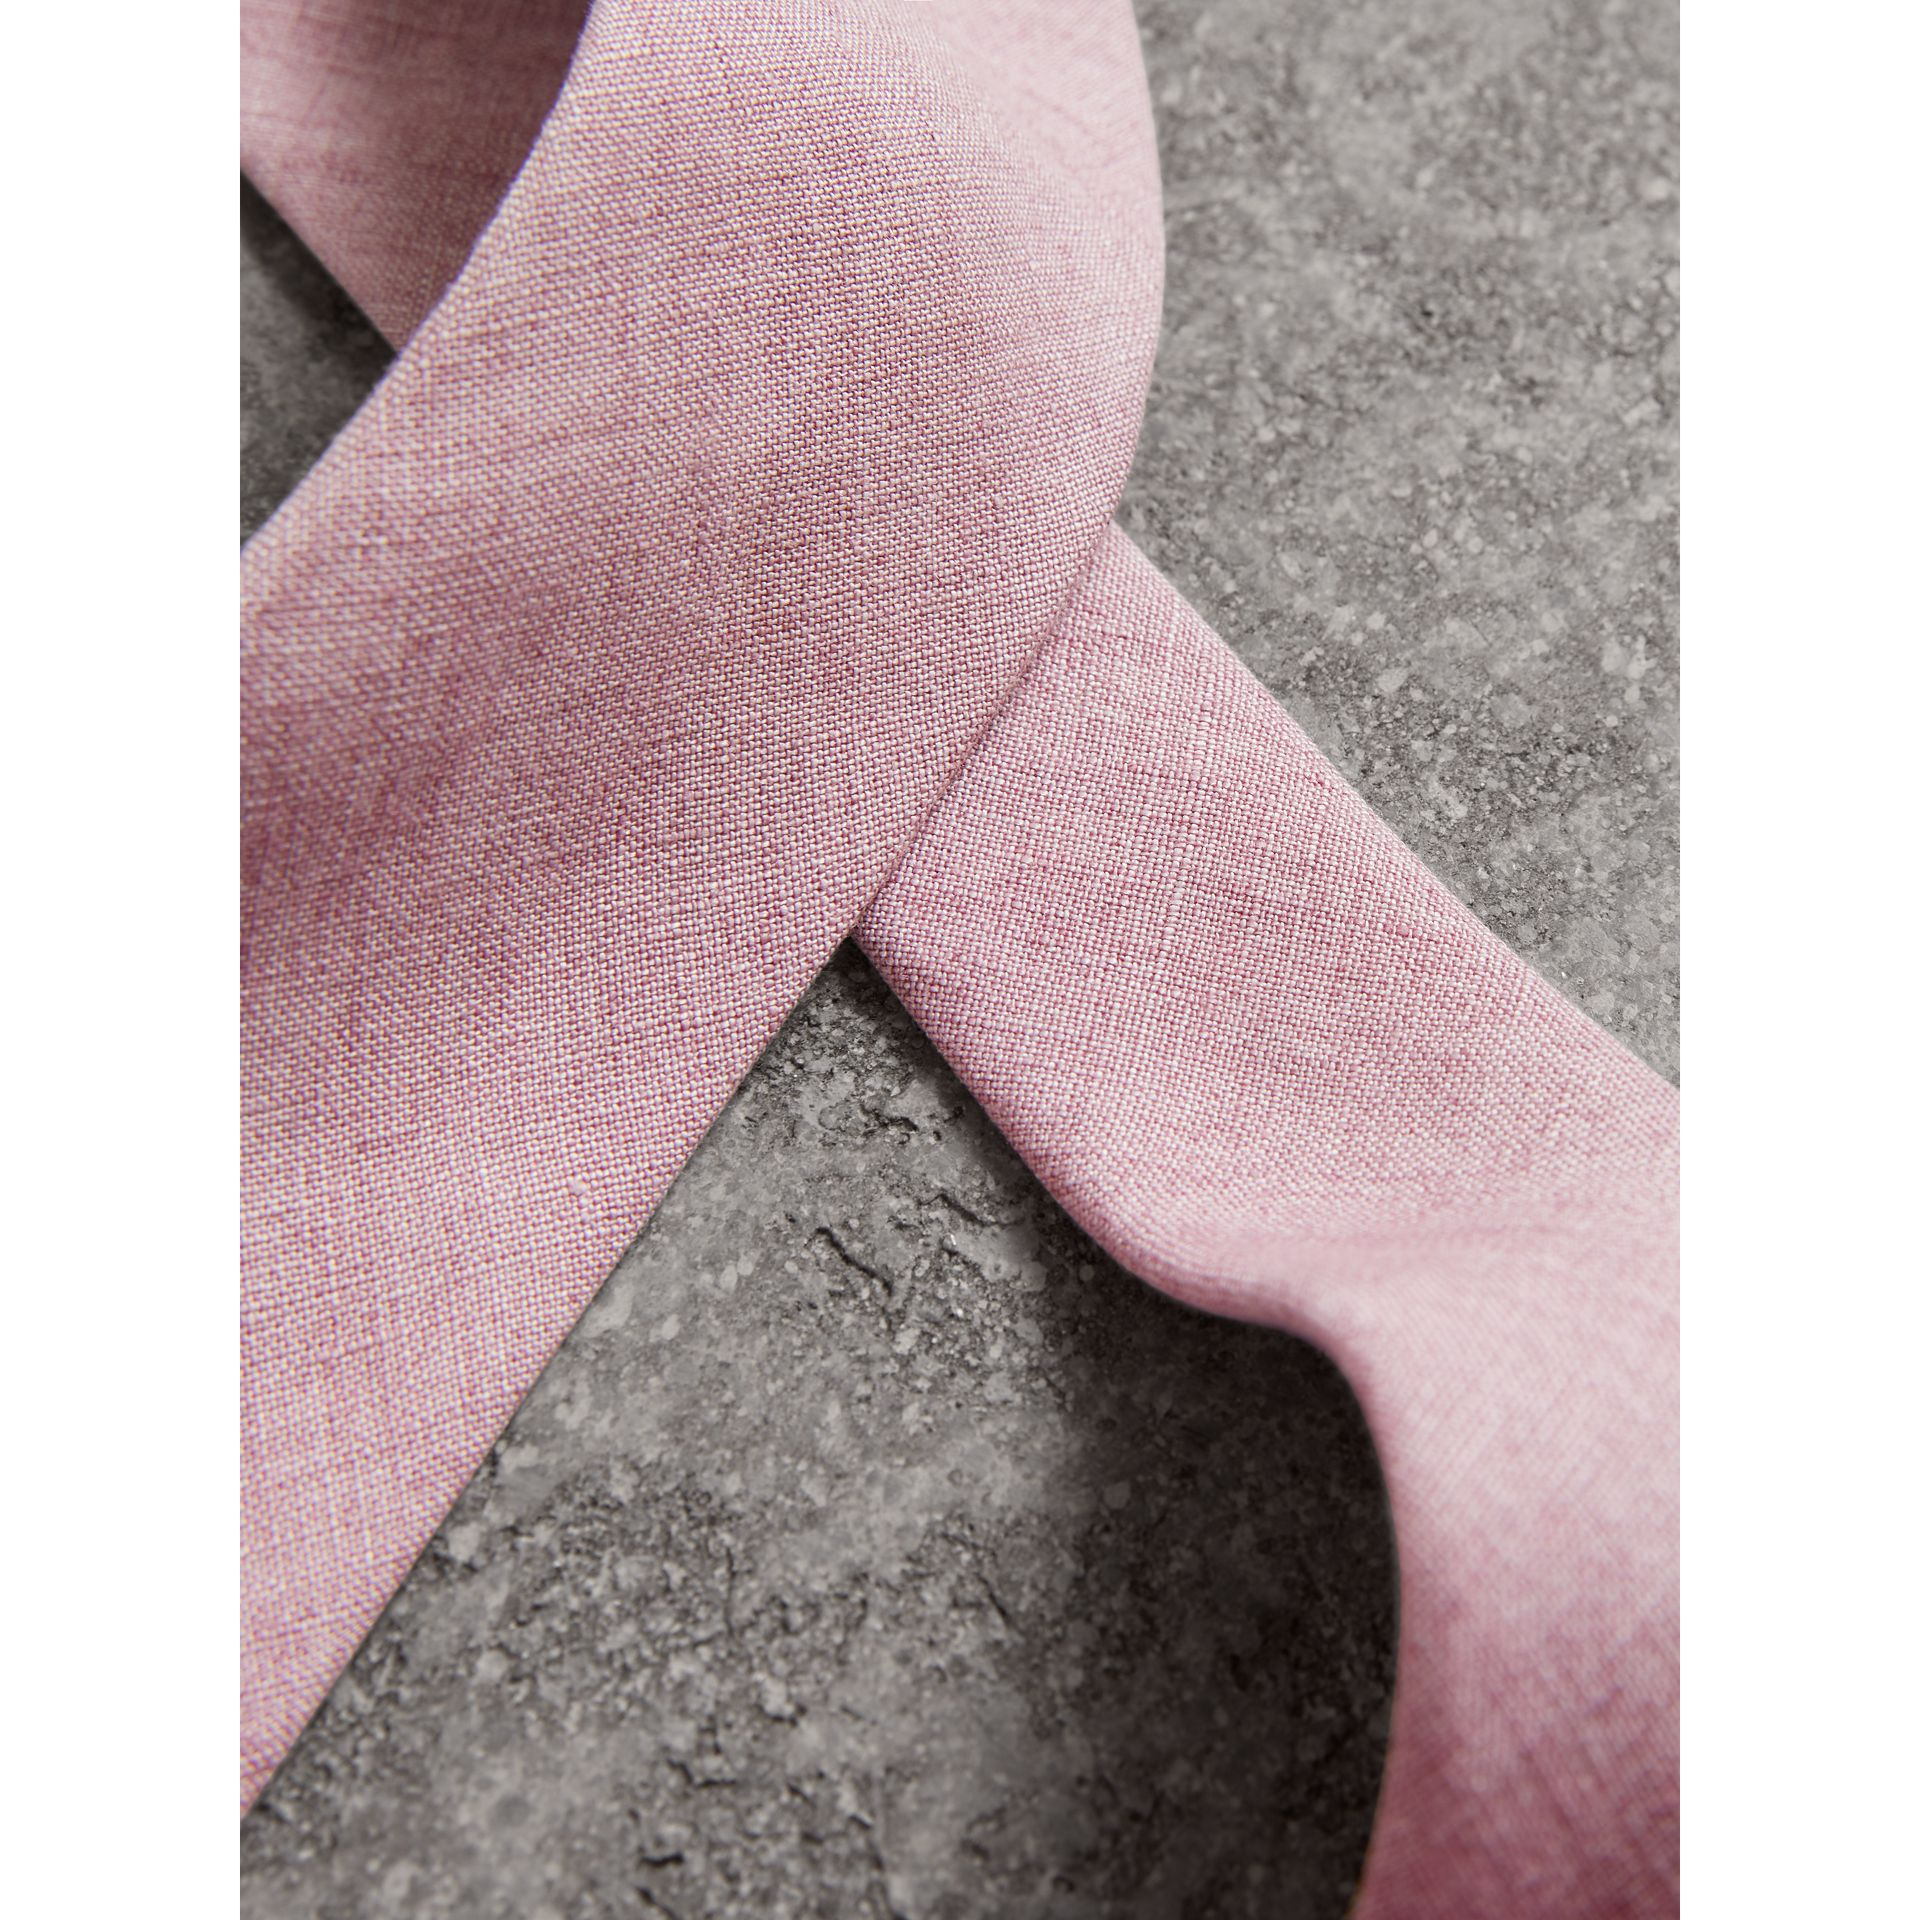 Slim Cut Linen Tie in Pink Heather - Men | Burberry United Kingdom - gallery image 1